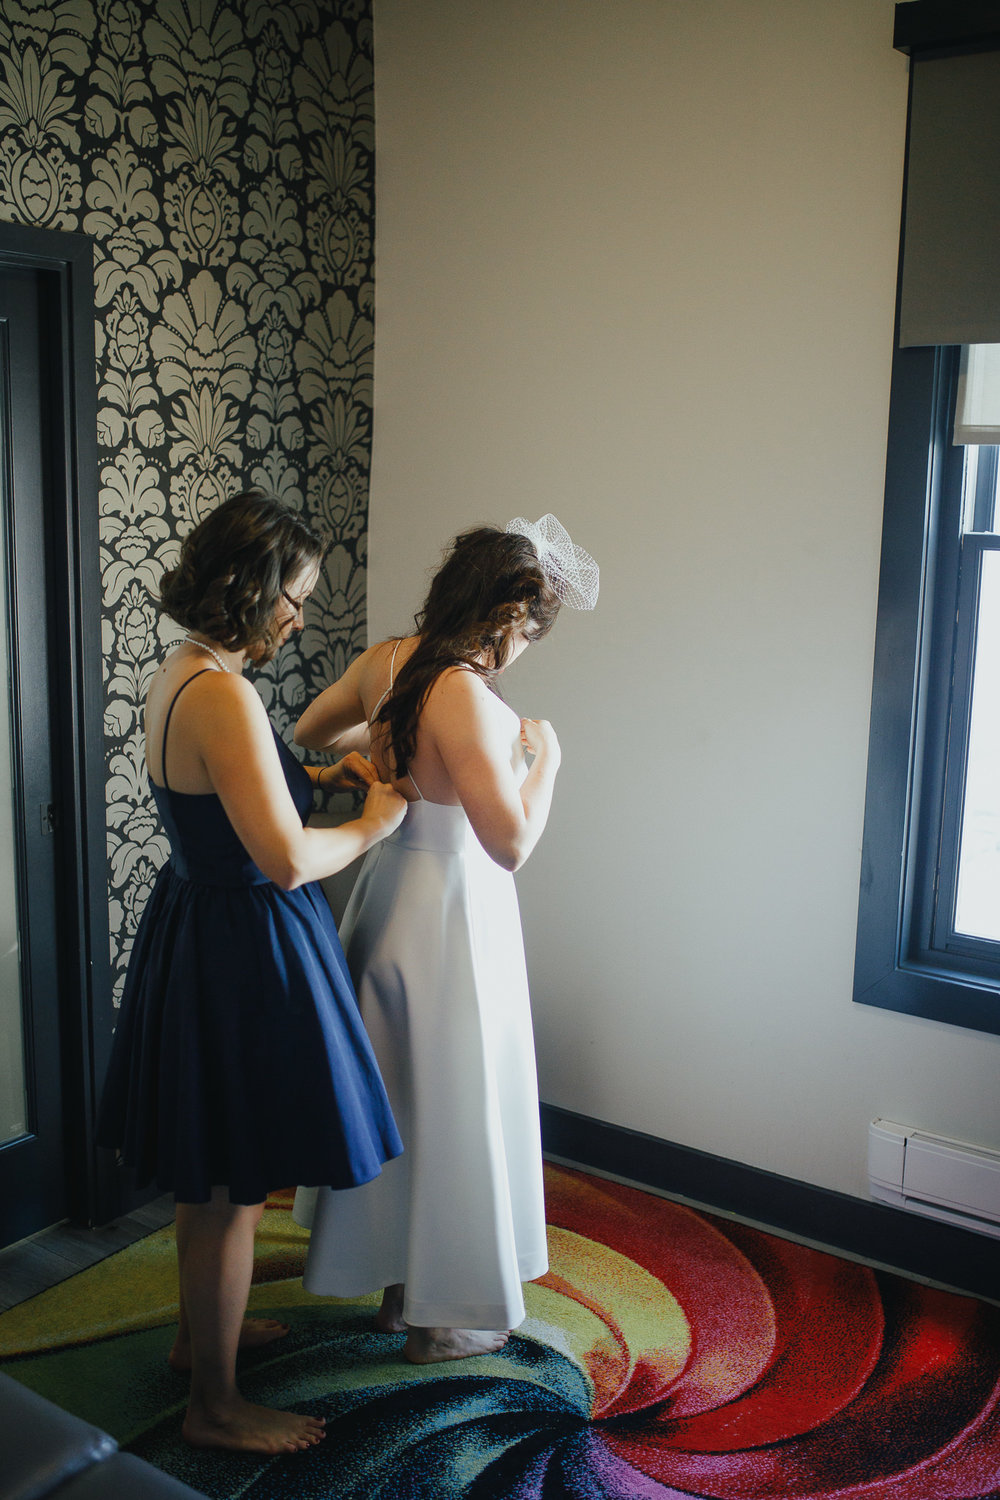 Archer Inspired Photography SF City Hall Elopement Wedding Lifestyle Documentary Affordable Photographer-19.jpg